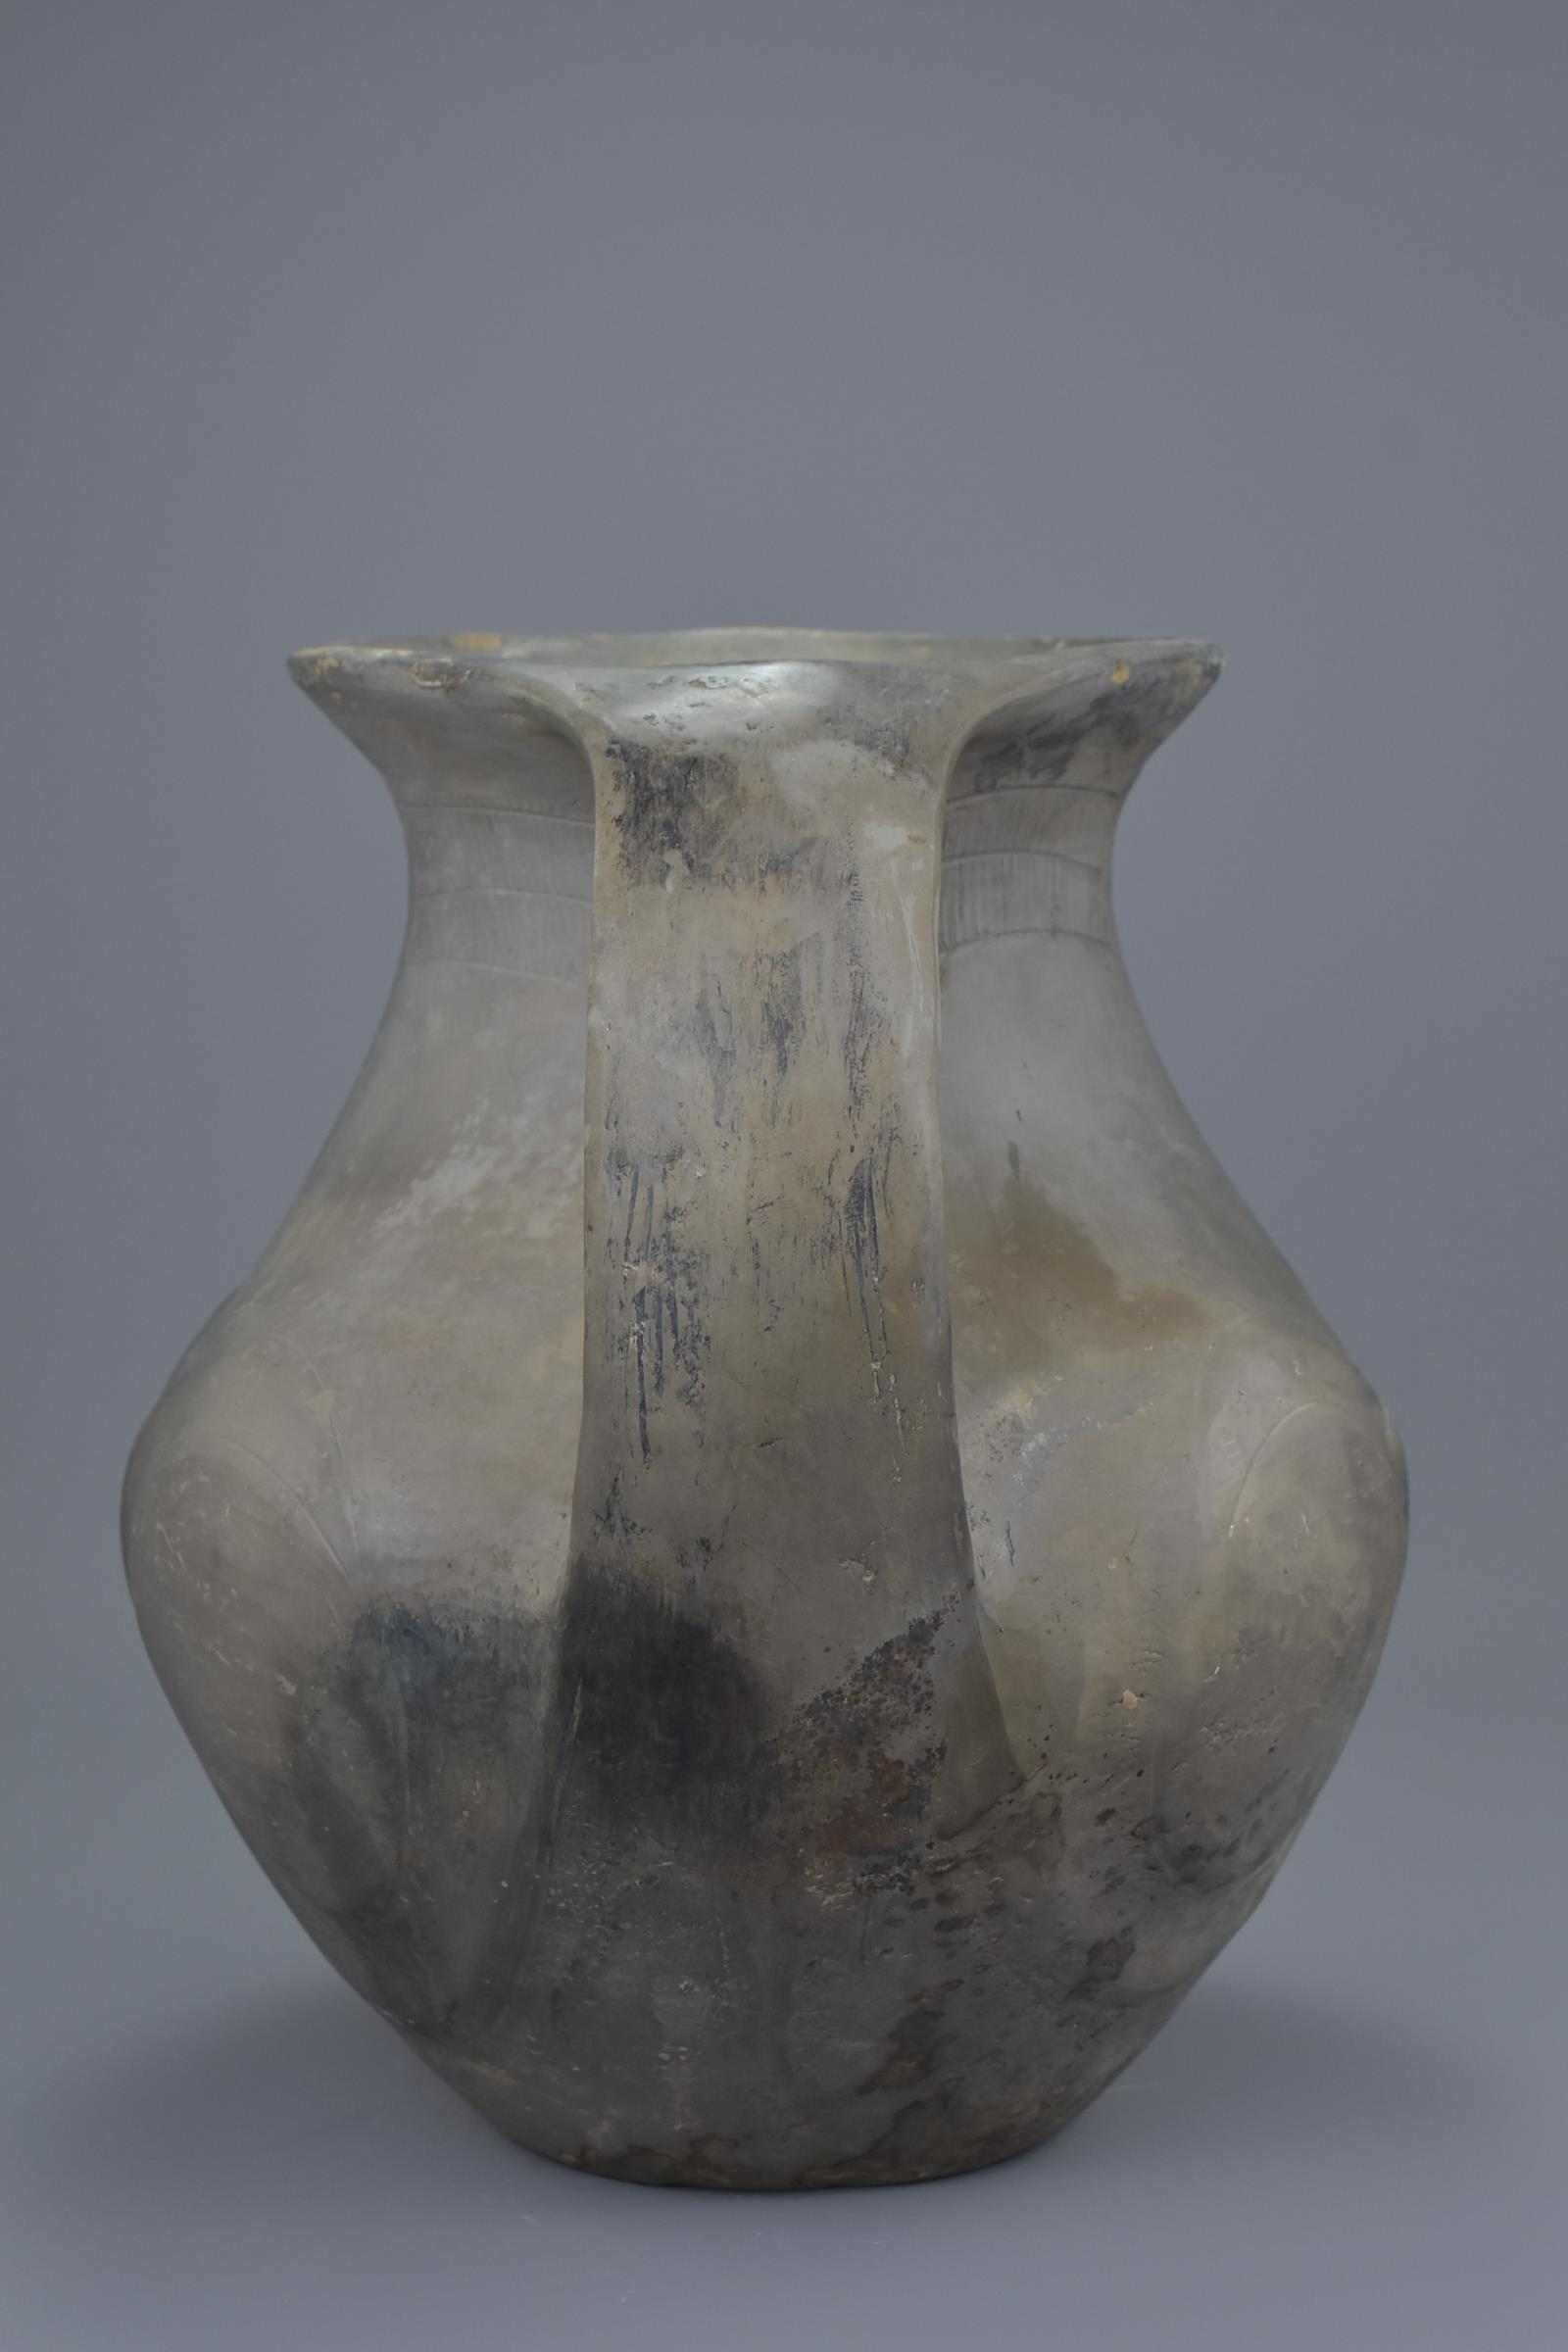 Lot 53 - A Rare Large Chinese Han Dynasty Black Pottery Amphora